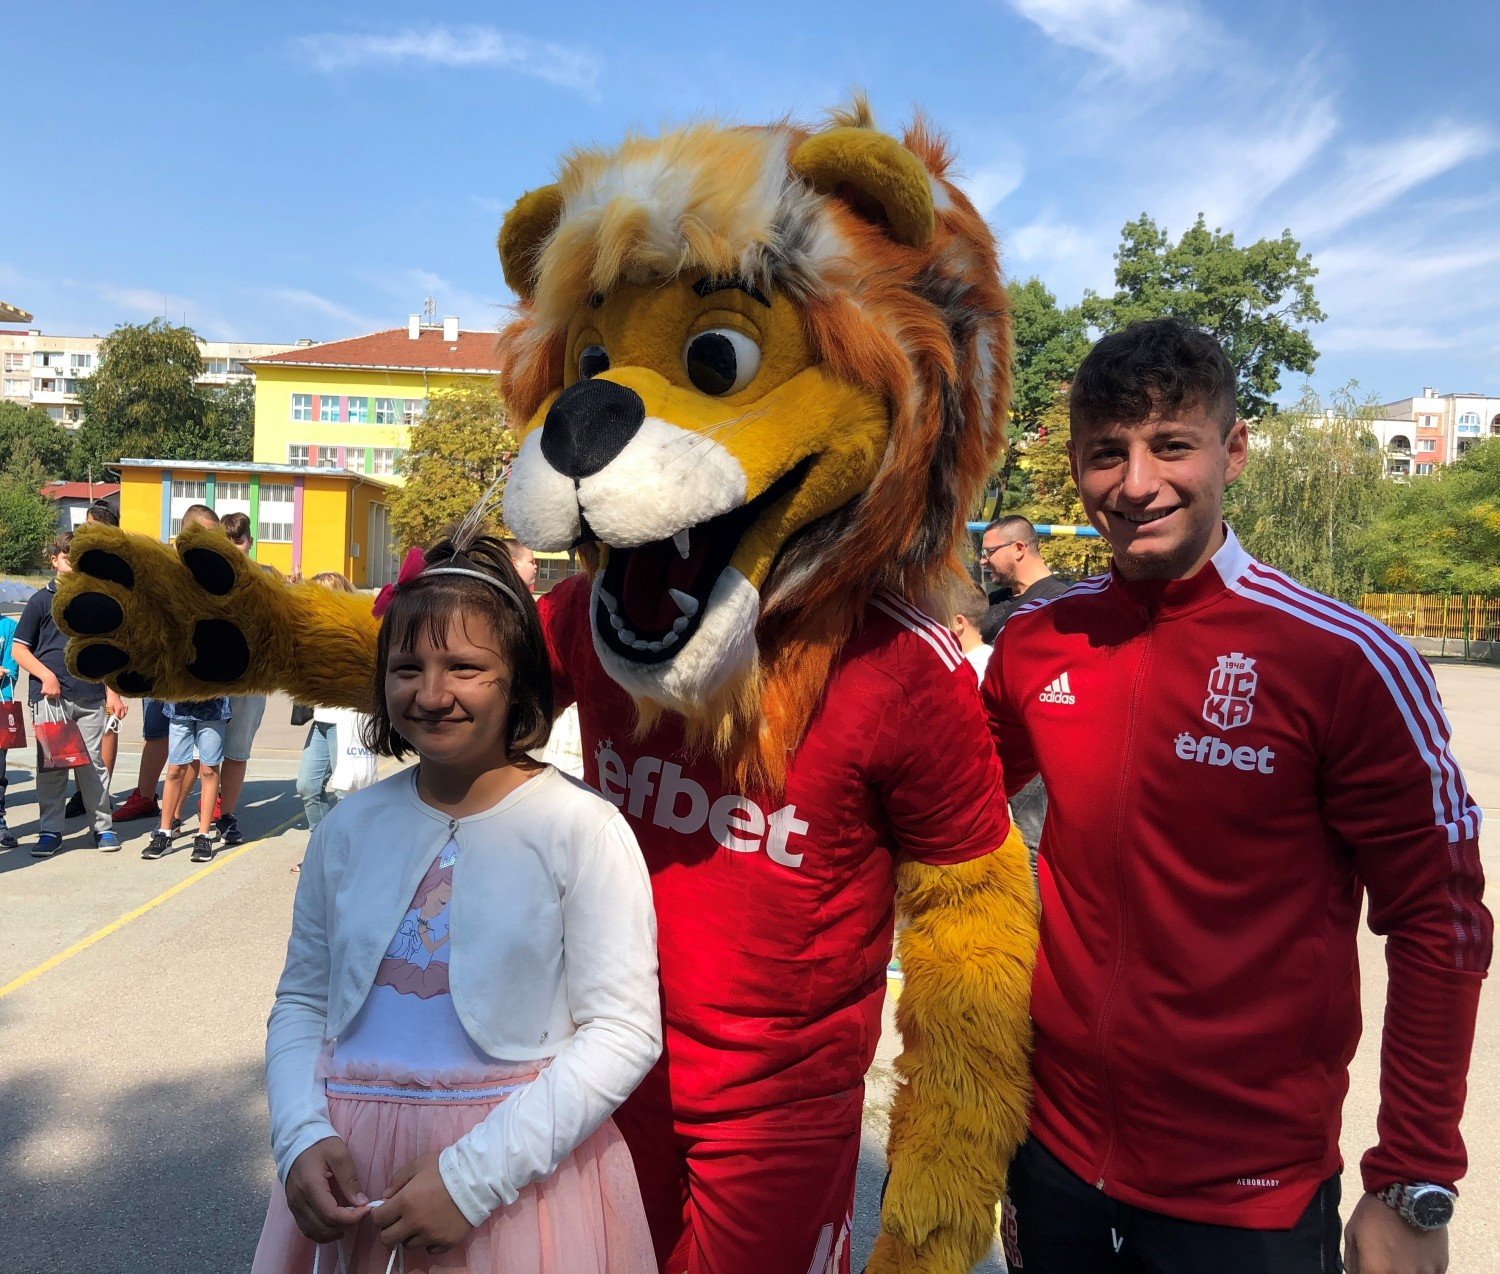 CSKA surprised the children at the Edouard Seguin Center on the first day of school